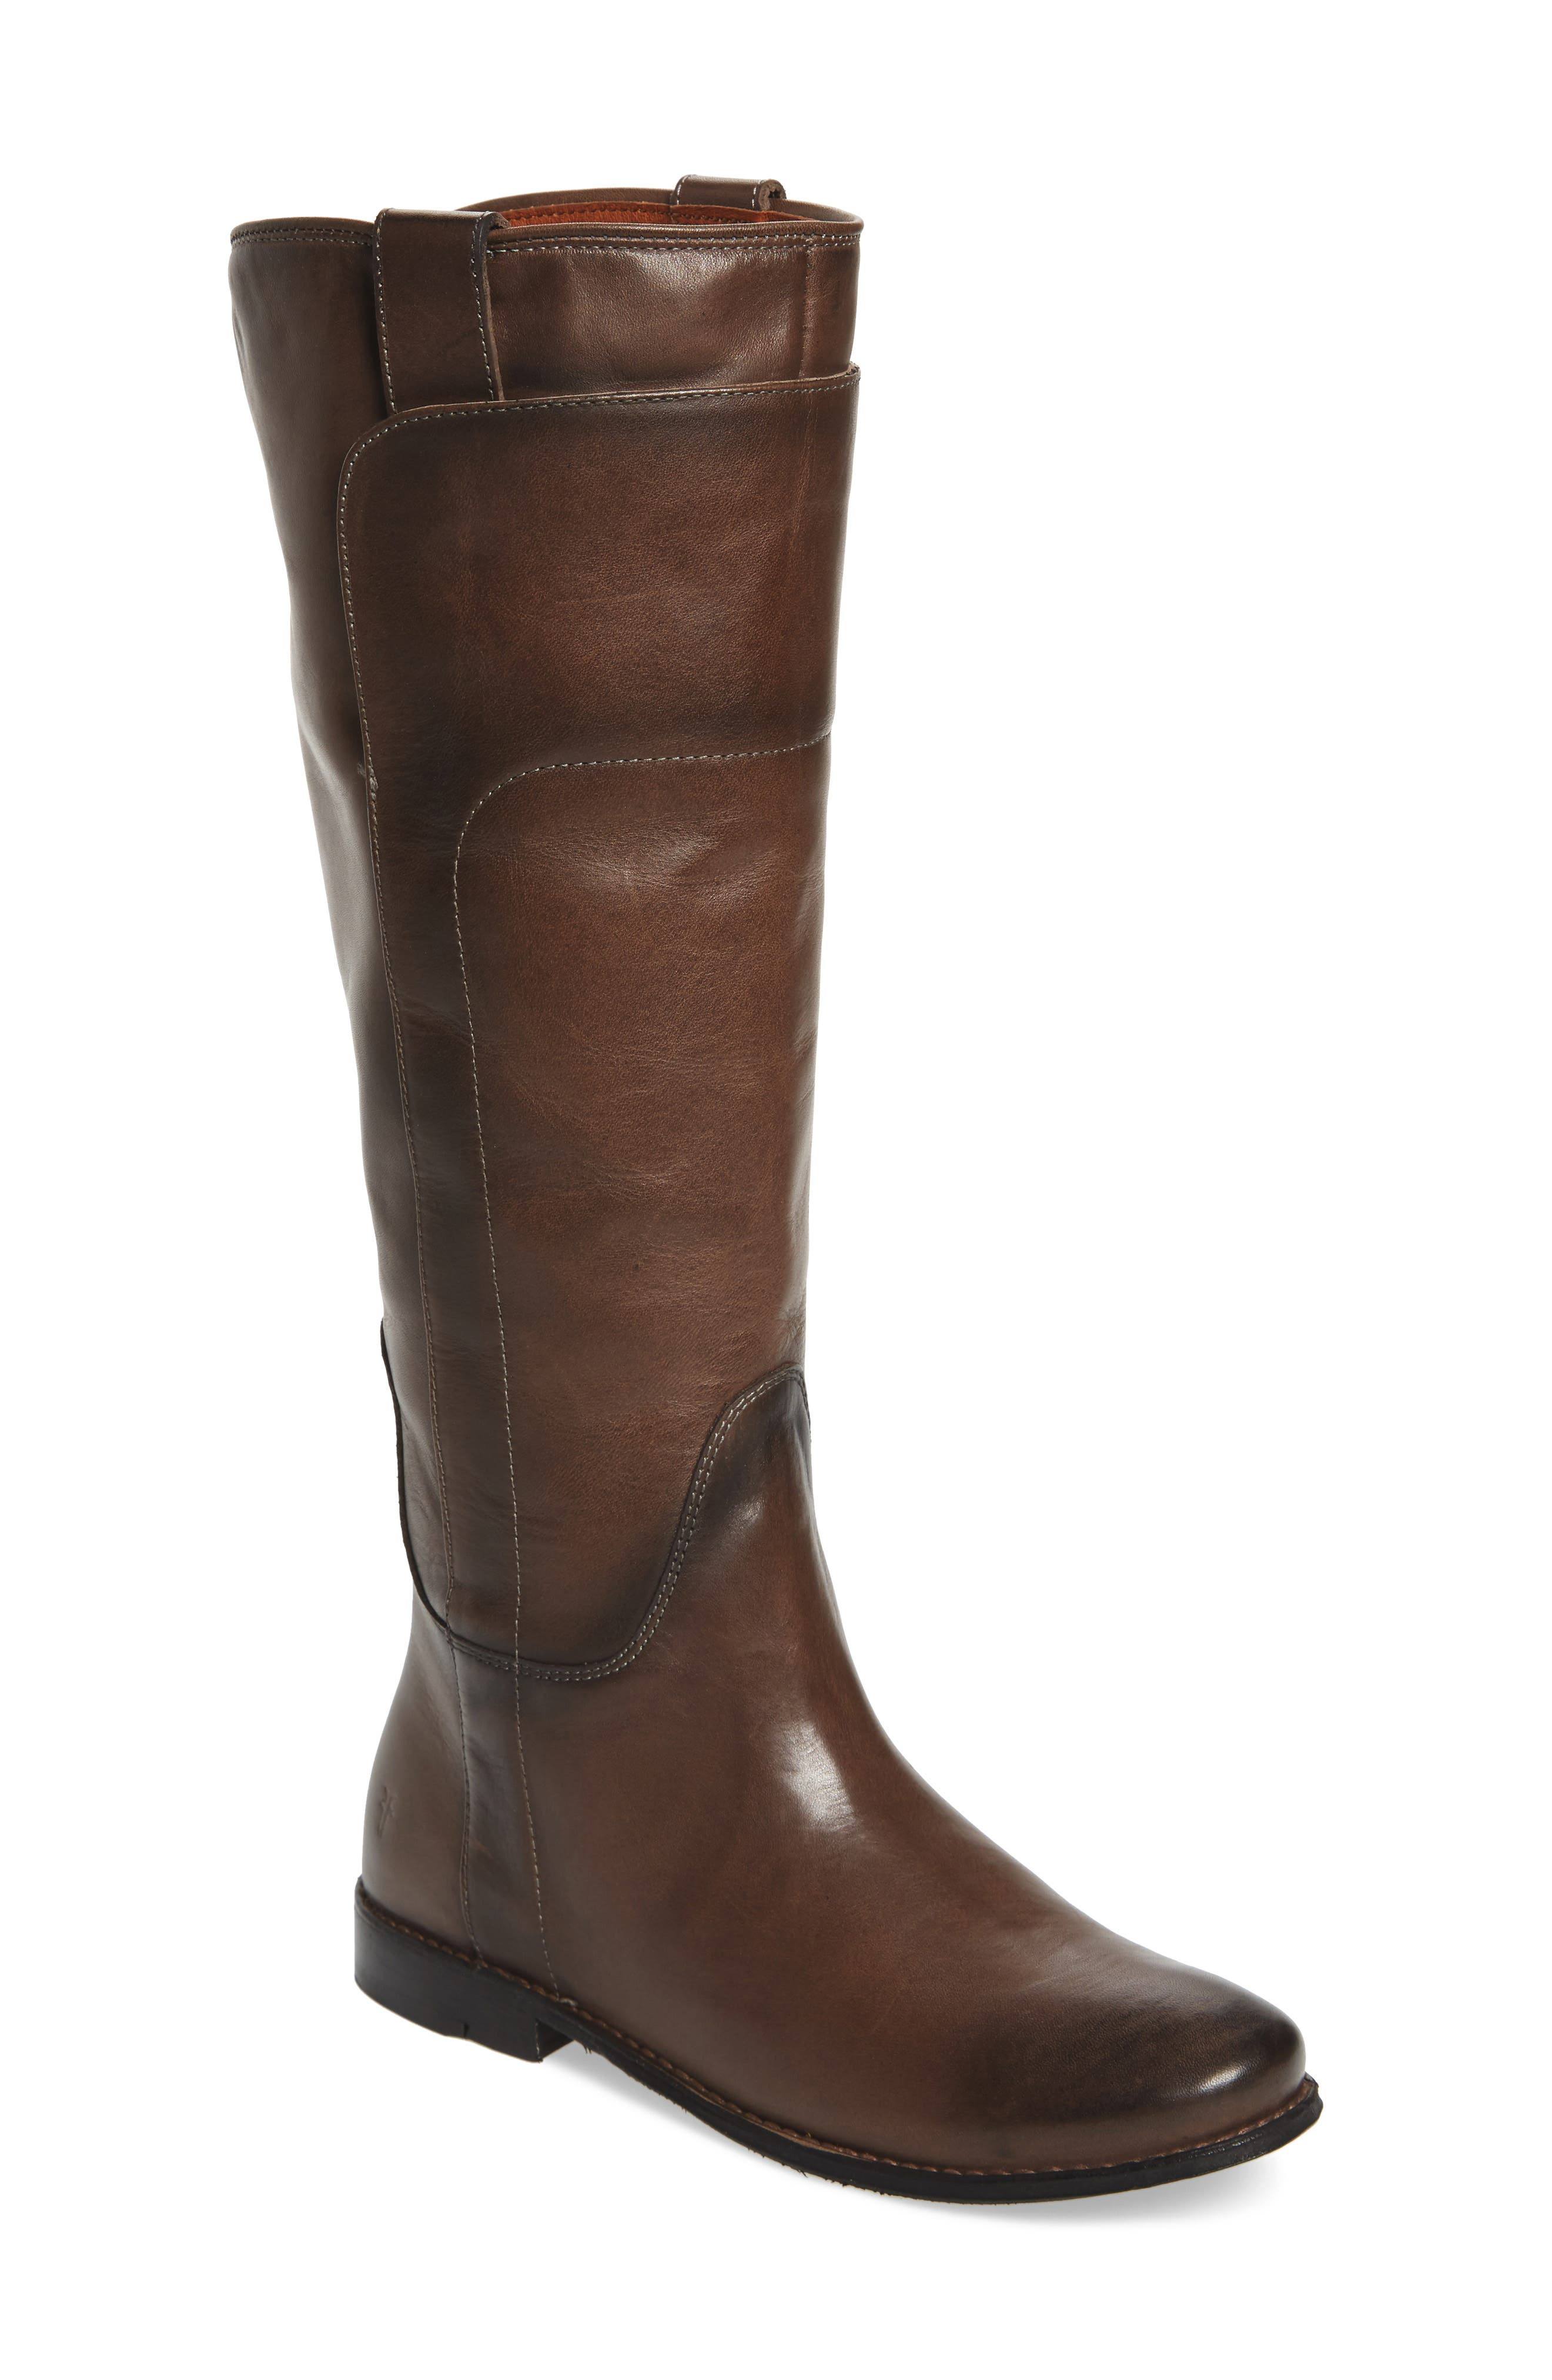 Paige Tall Riding Boot,                         Main,                         color, Smoke